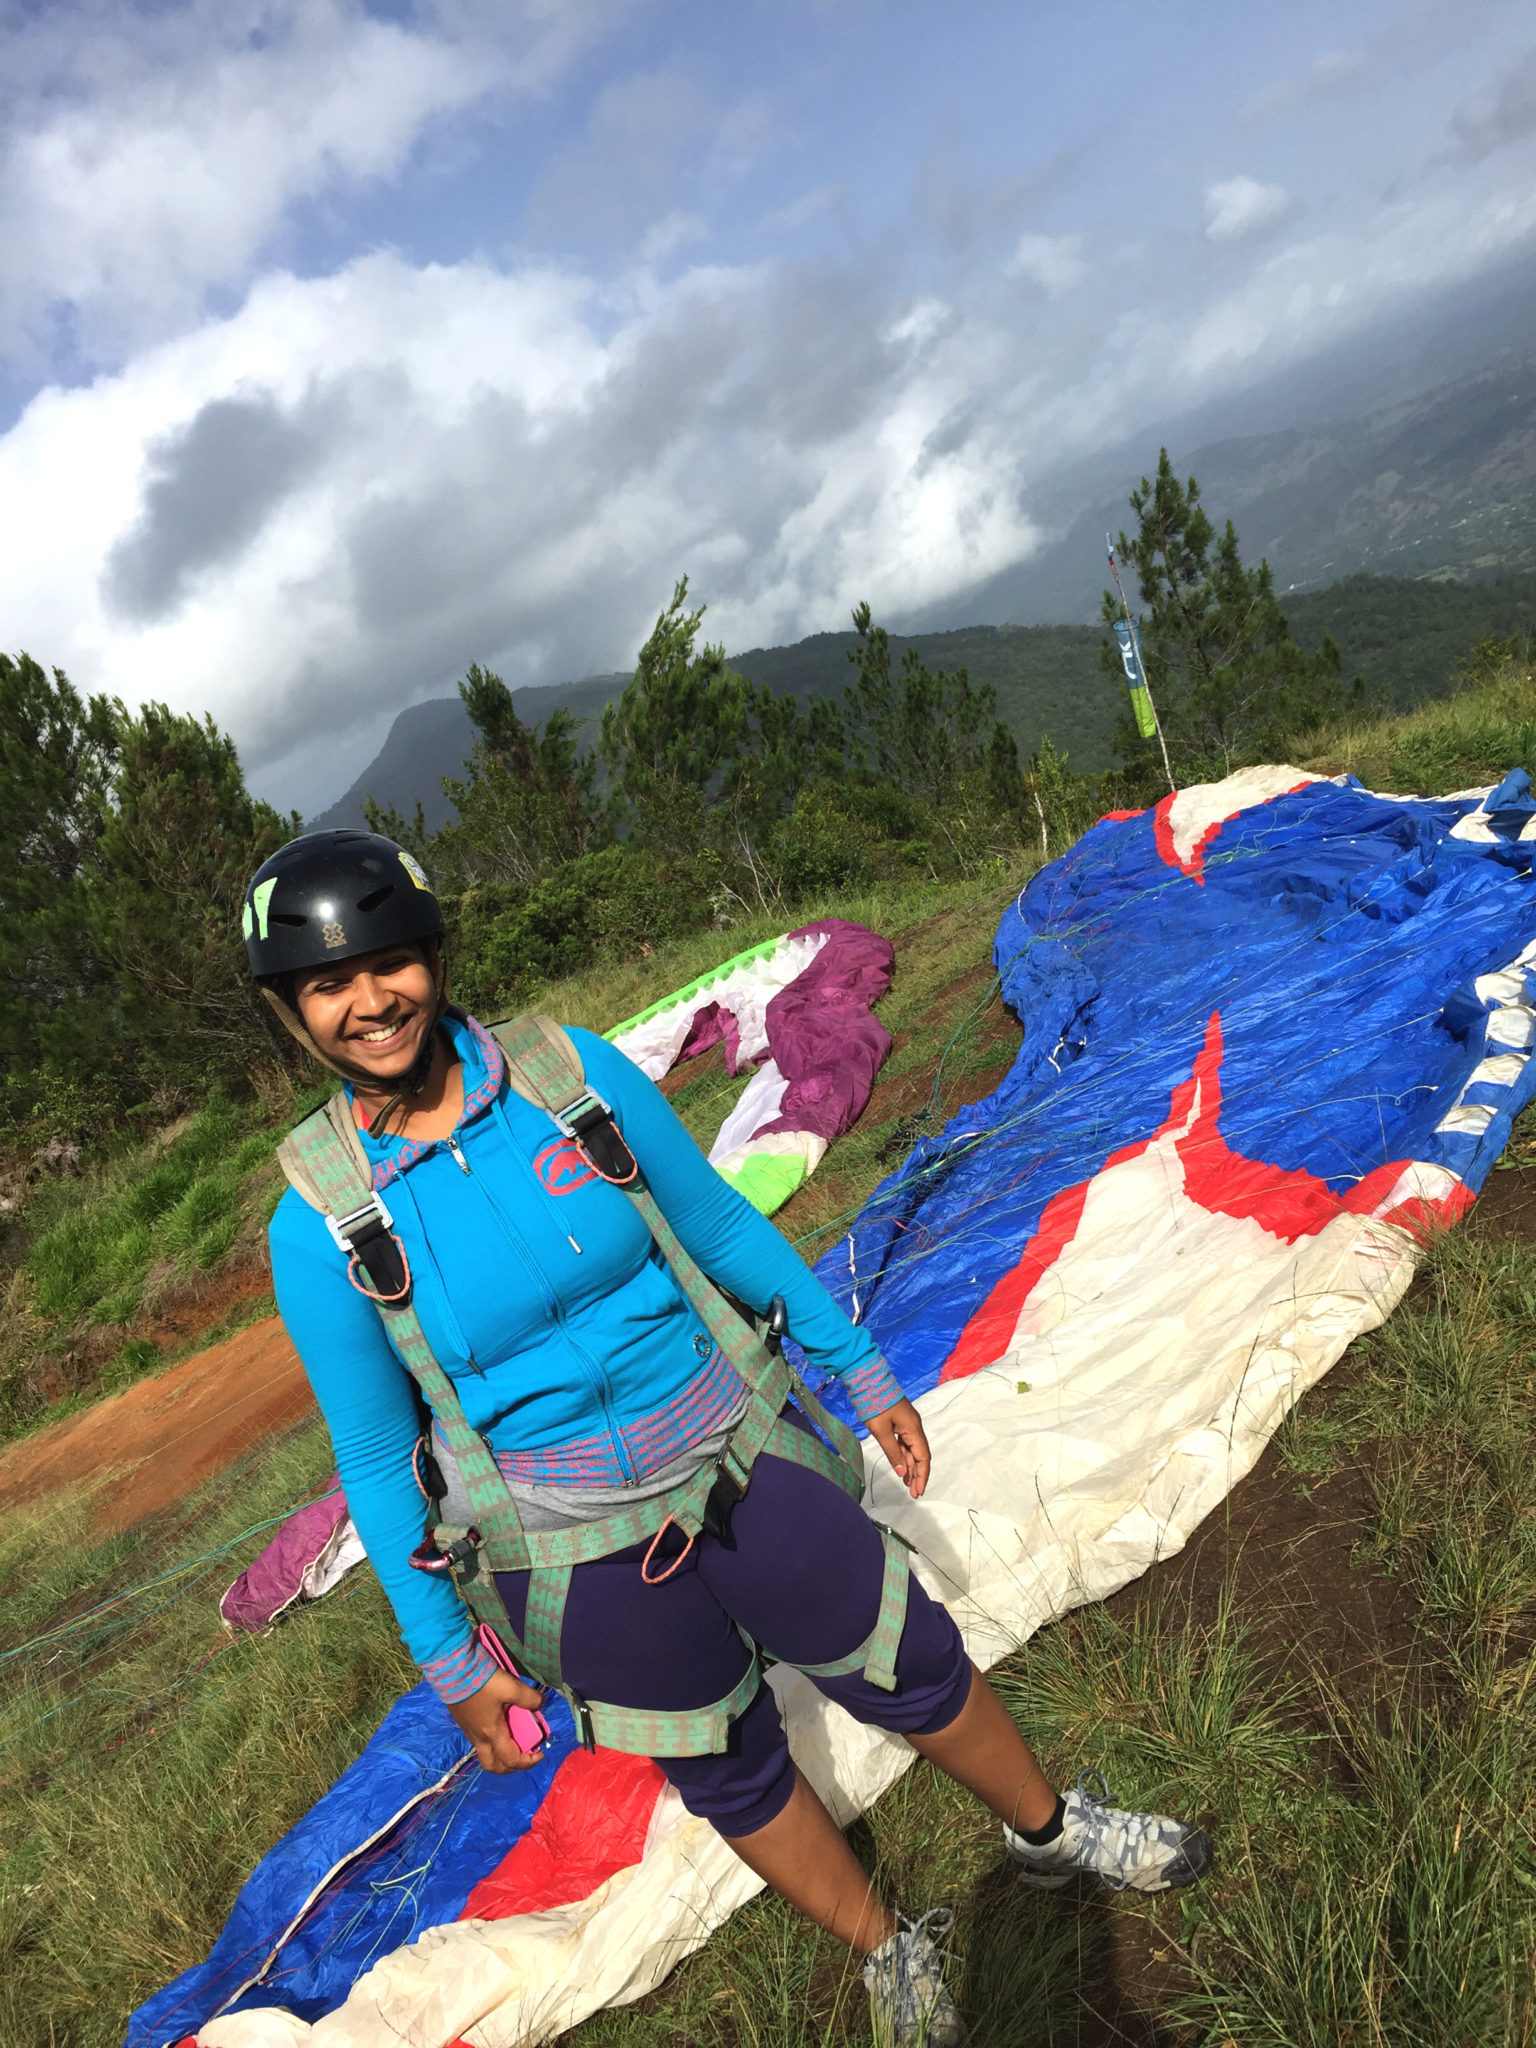 Republique_dominicaine_jarabacoa_parapente_hema_pose_ses_valises